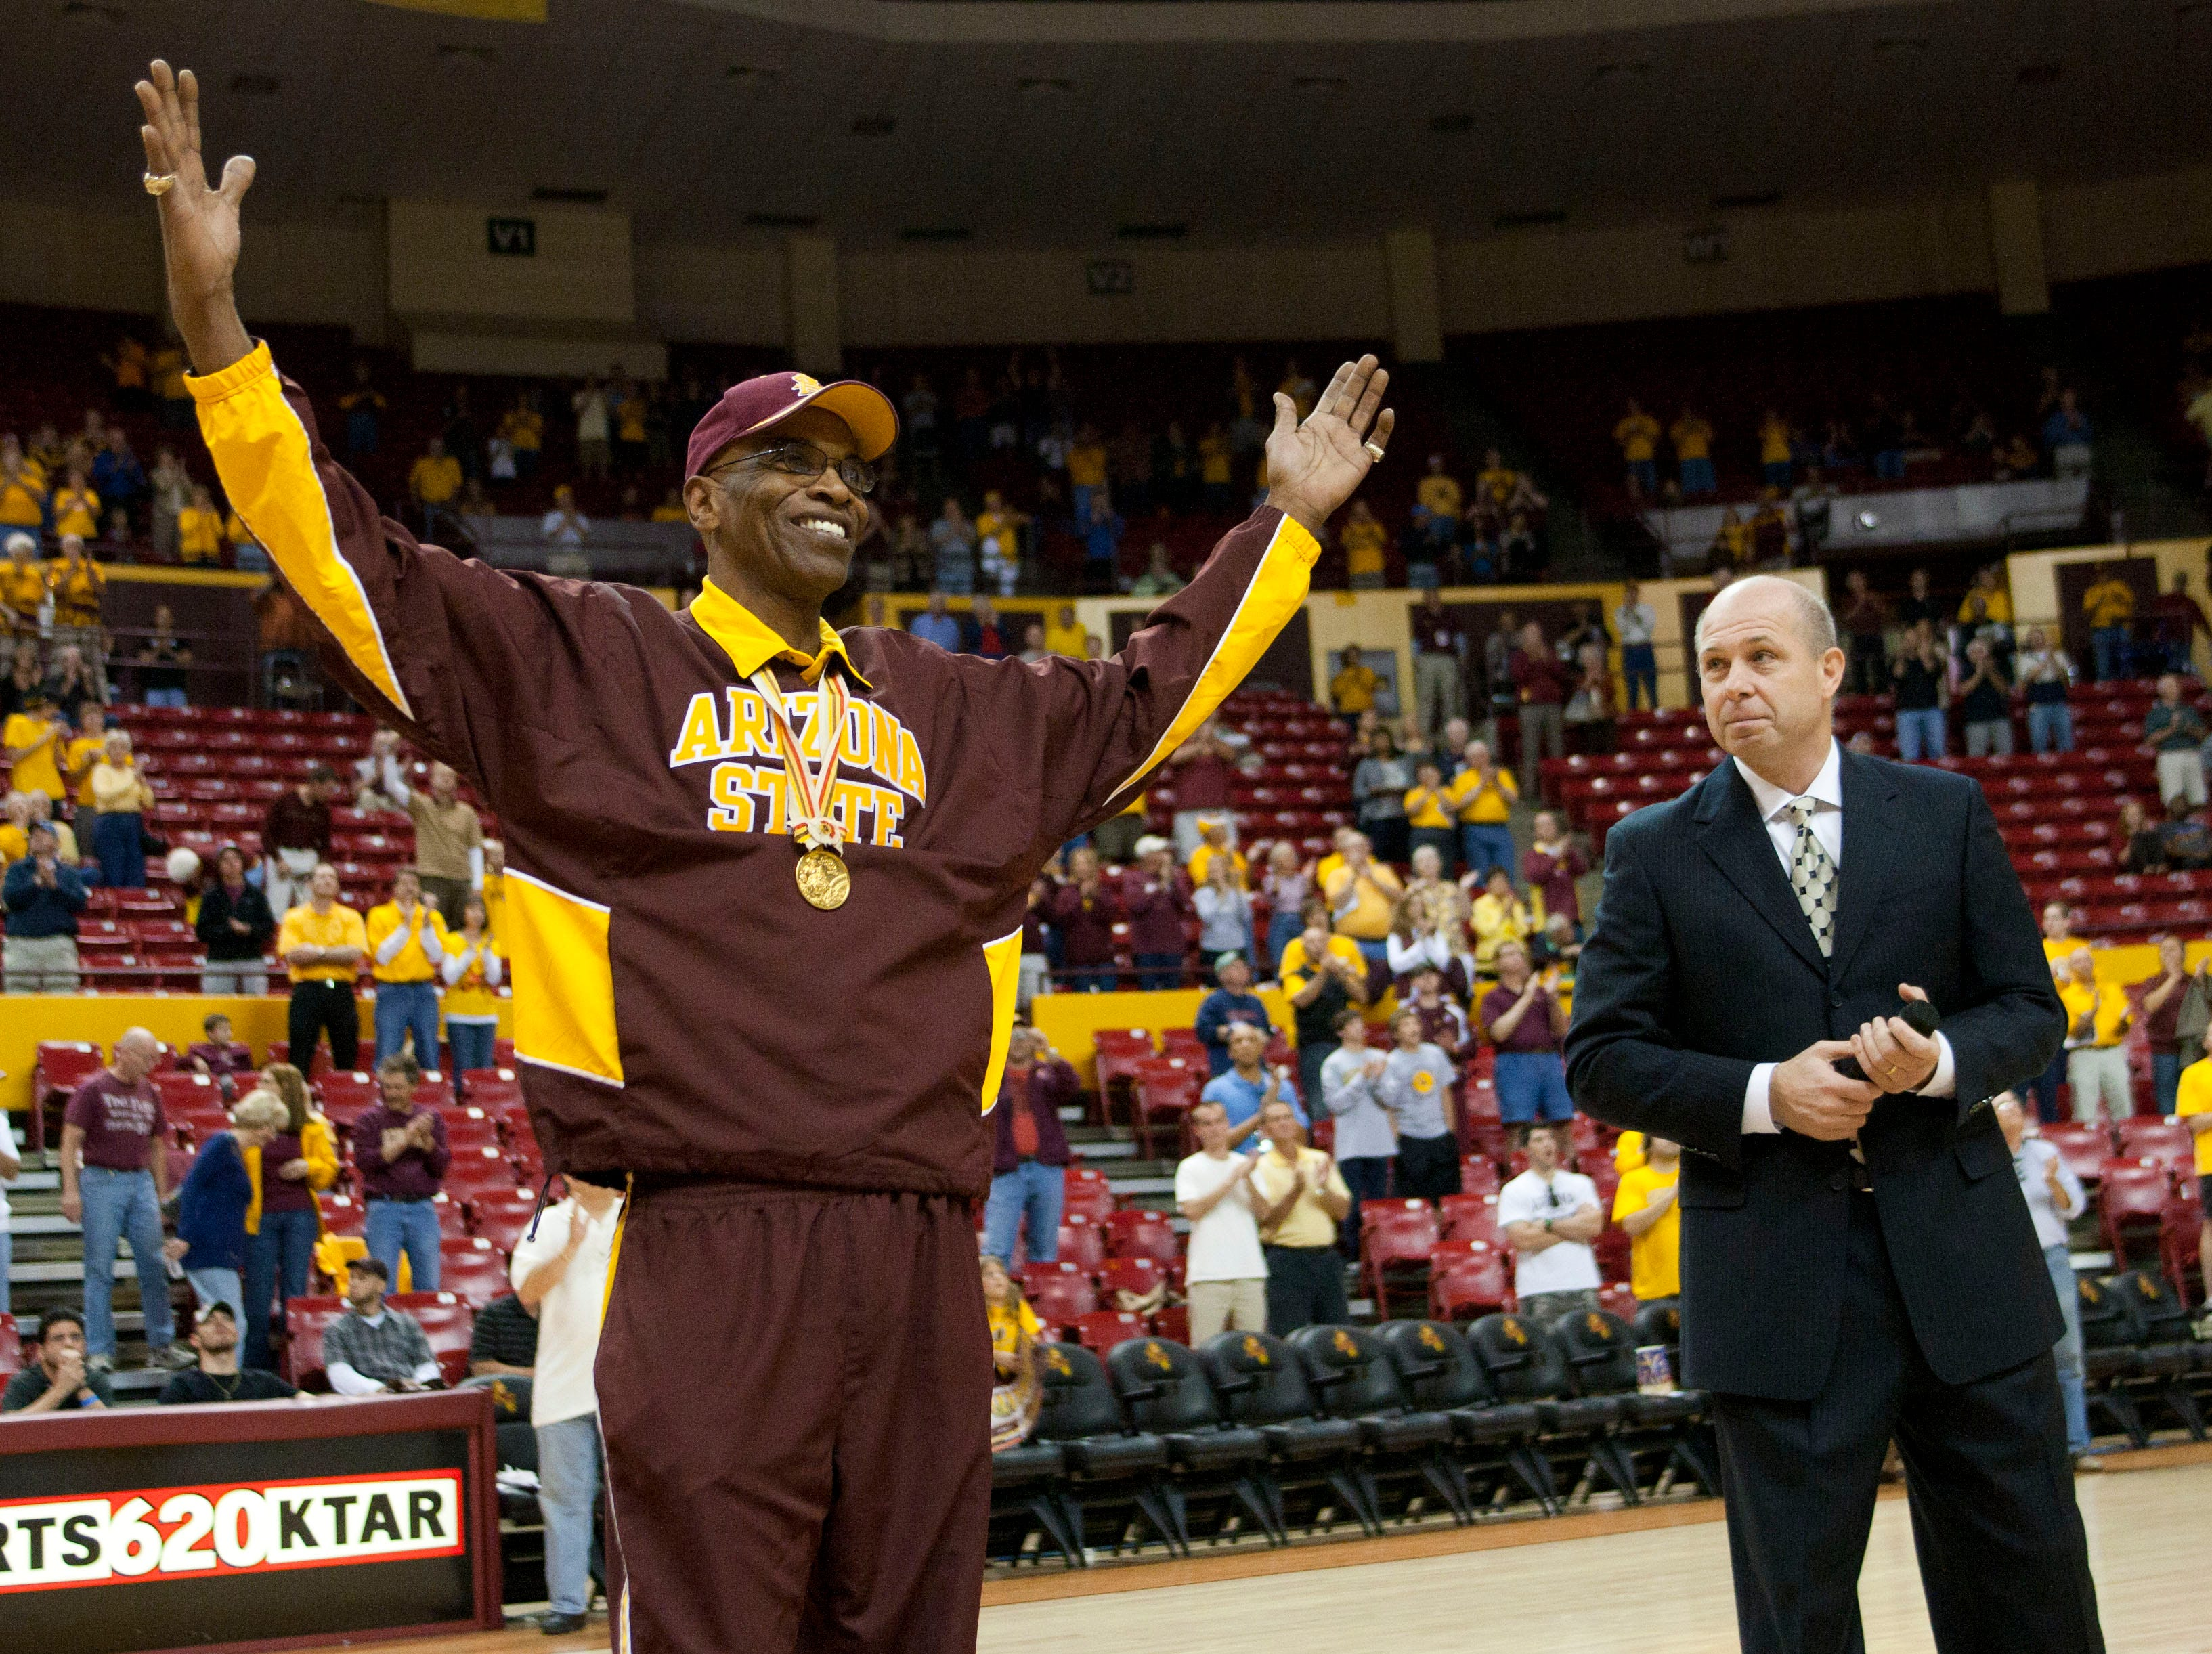 Joe Caldwell played basketball at Arizona State from 1961-1964 and was named an All-Star in both the ABA and NBA.